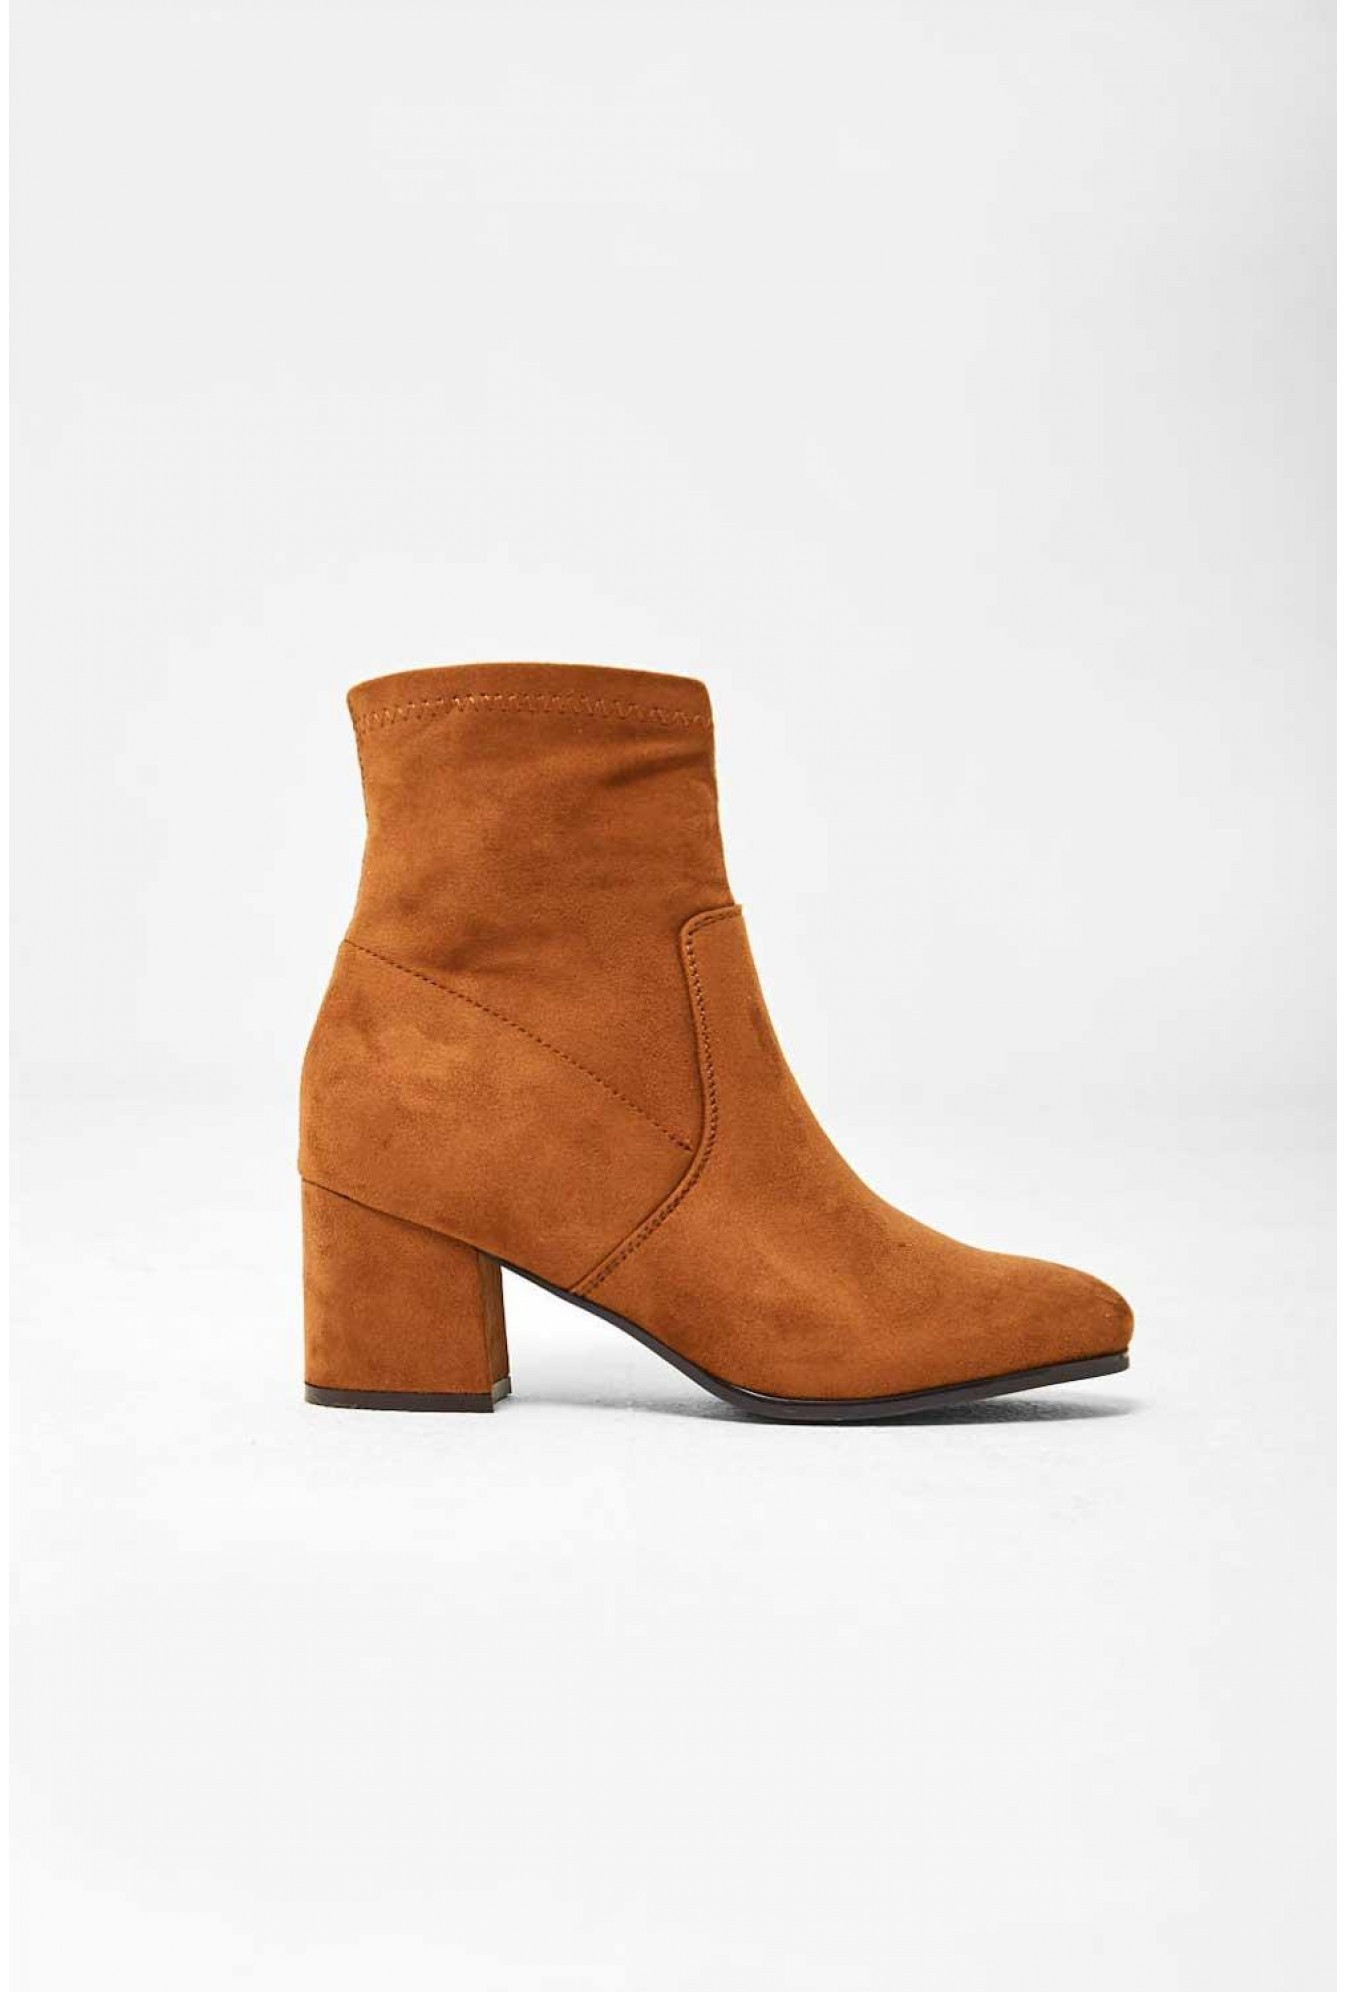 best sneakers 17da2 df1f3 Imara Suede Ankle Boots in Camel